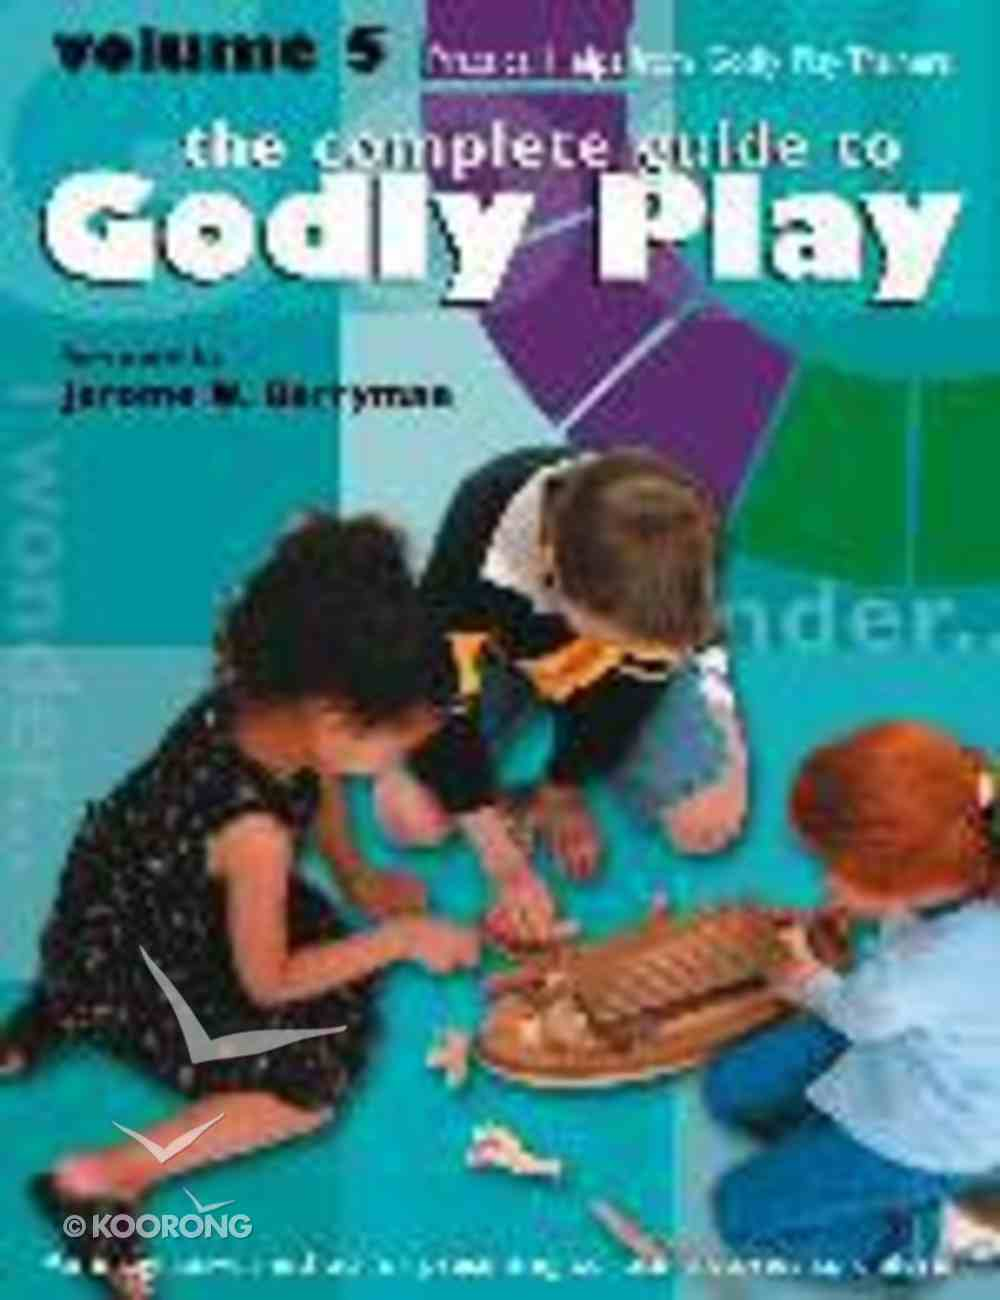 Complete Guide to Godly Play, the - Volume 5 - Practical Help From the Godly Play Community (#05 in The Complete Guide To Godly Play Series) Paperback